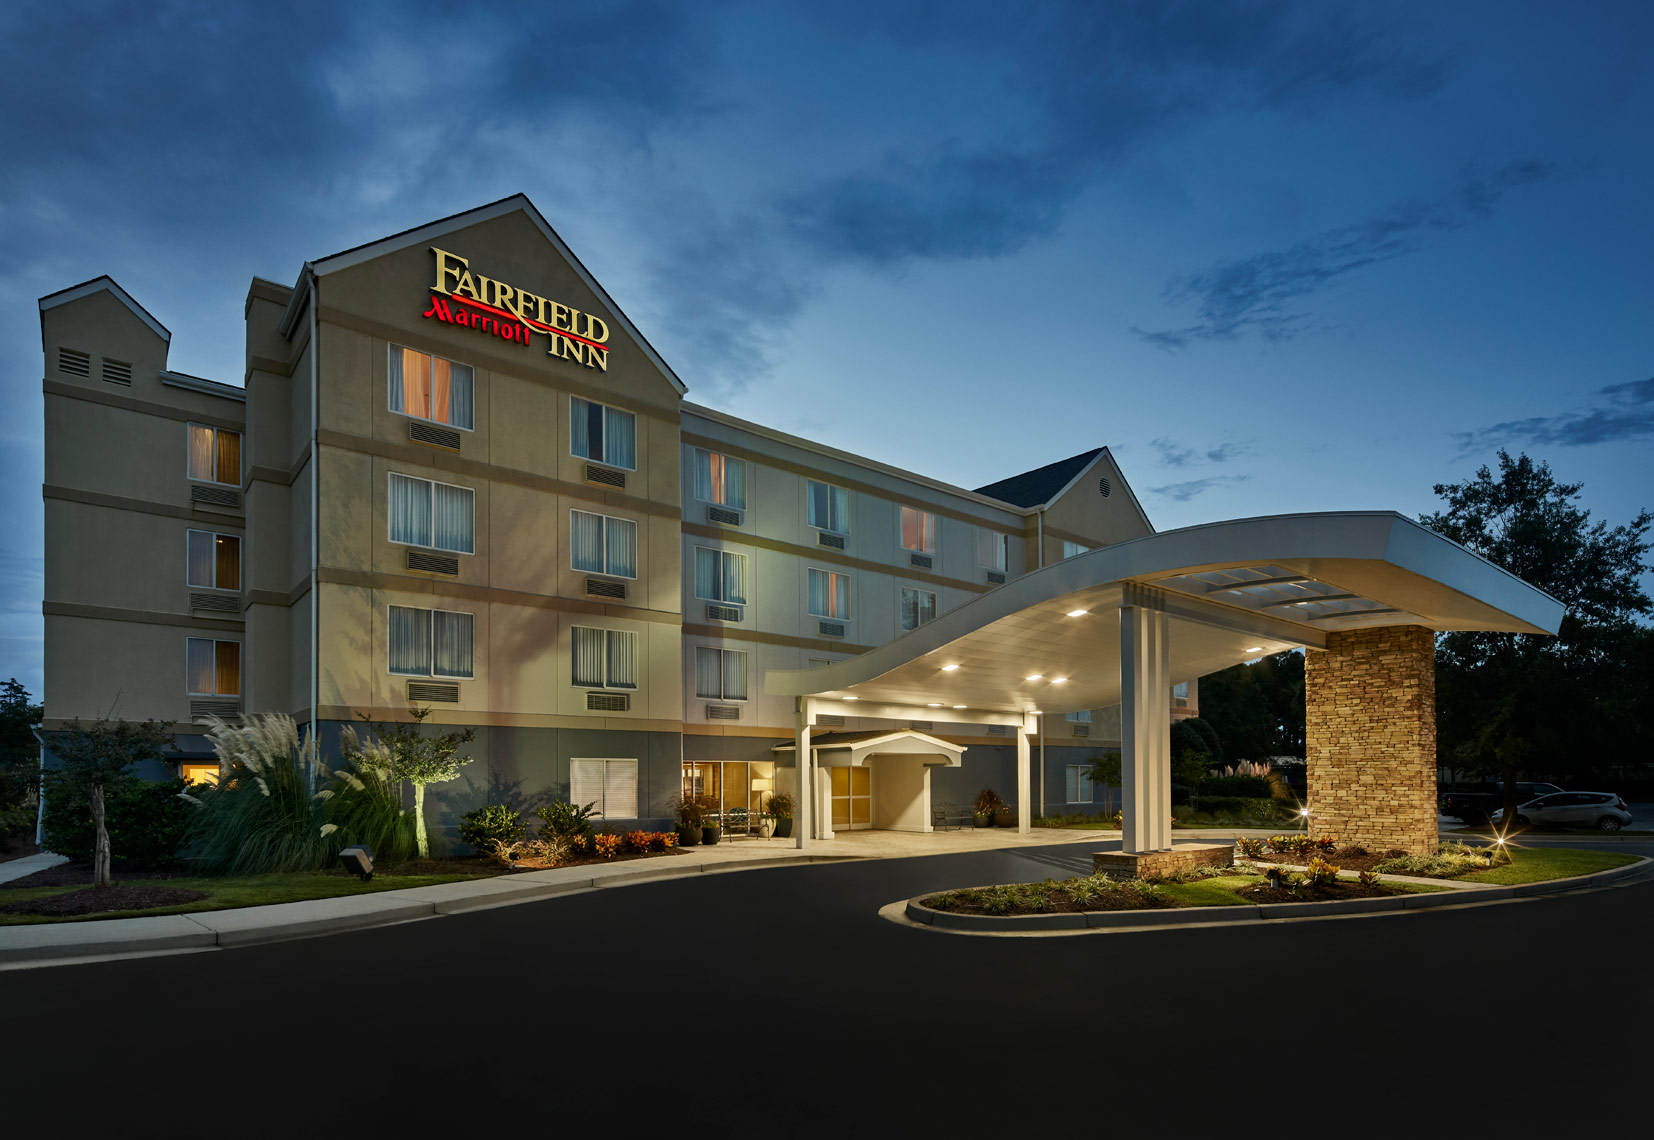 Fairfield-Inn-Myrtle-Beach-1A